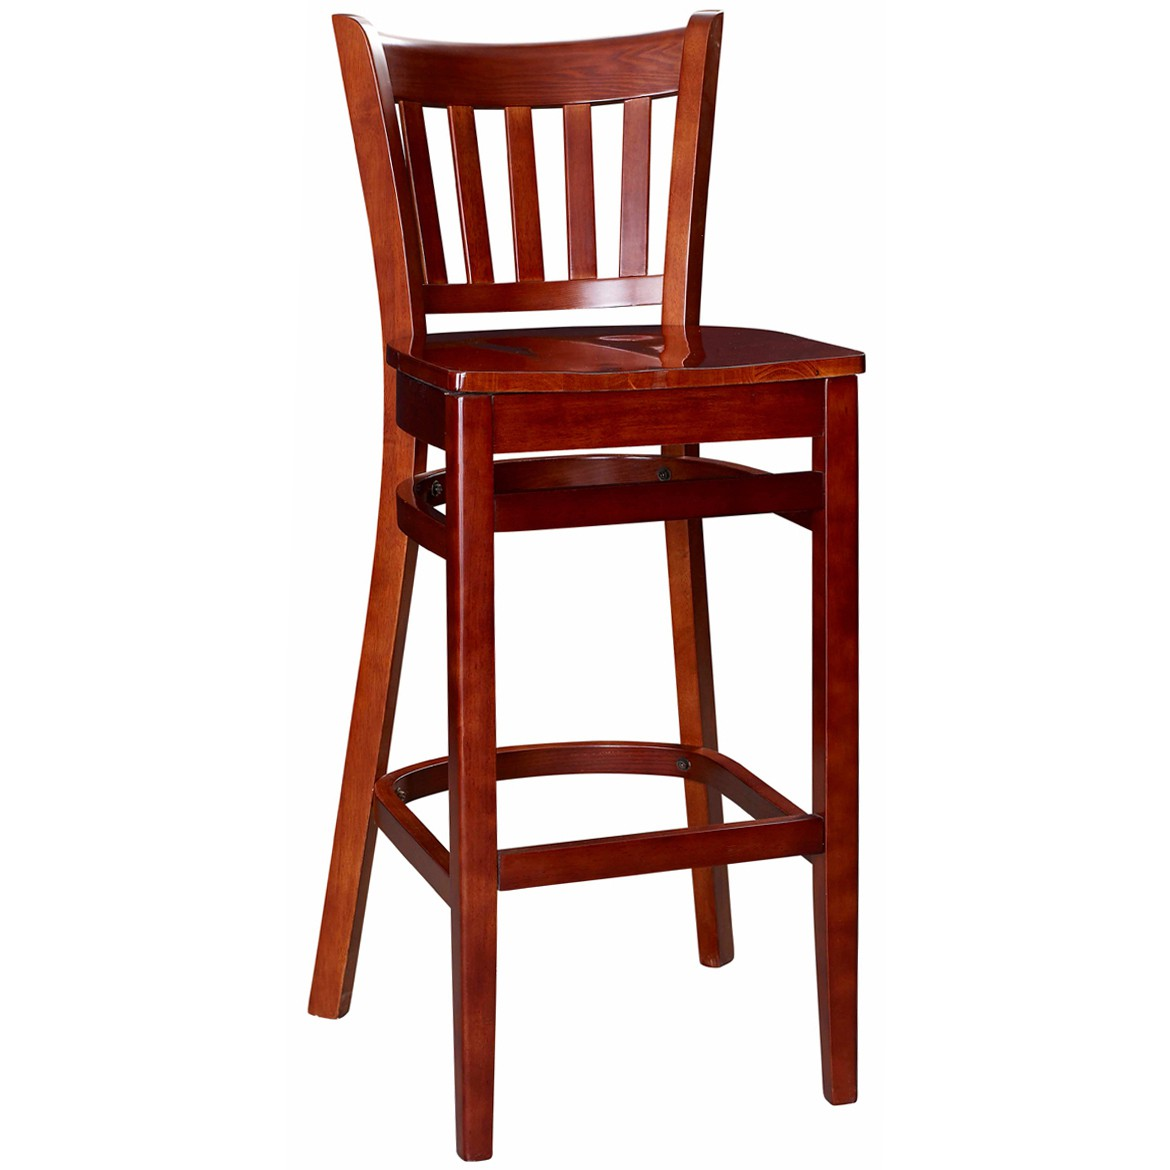 Bar Chairs Vertical Slat Wood Bar Stool For Sale Restaurant Barstools